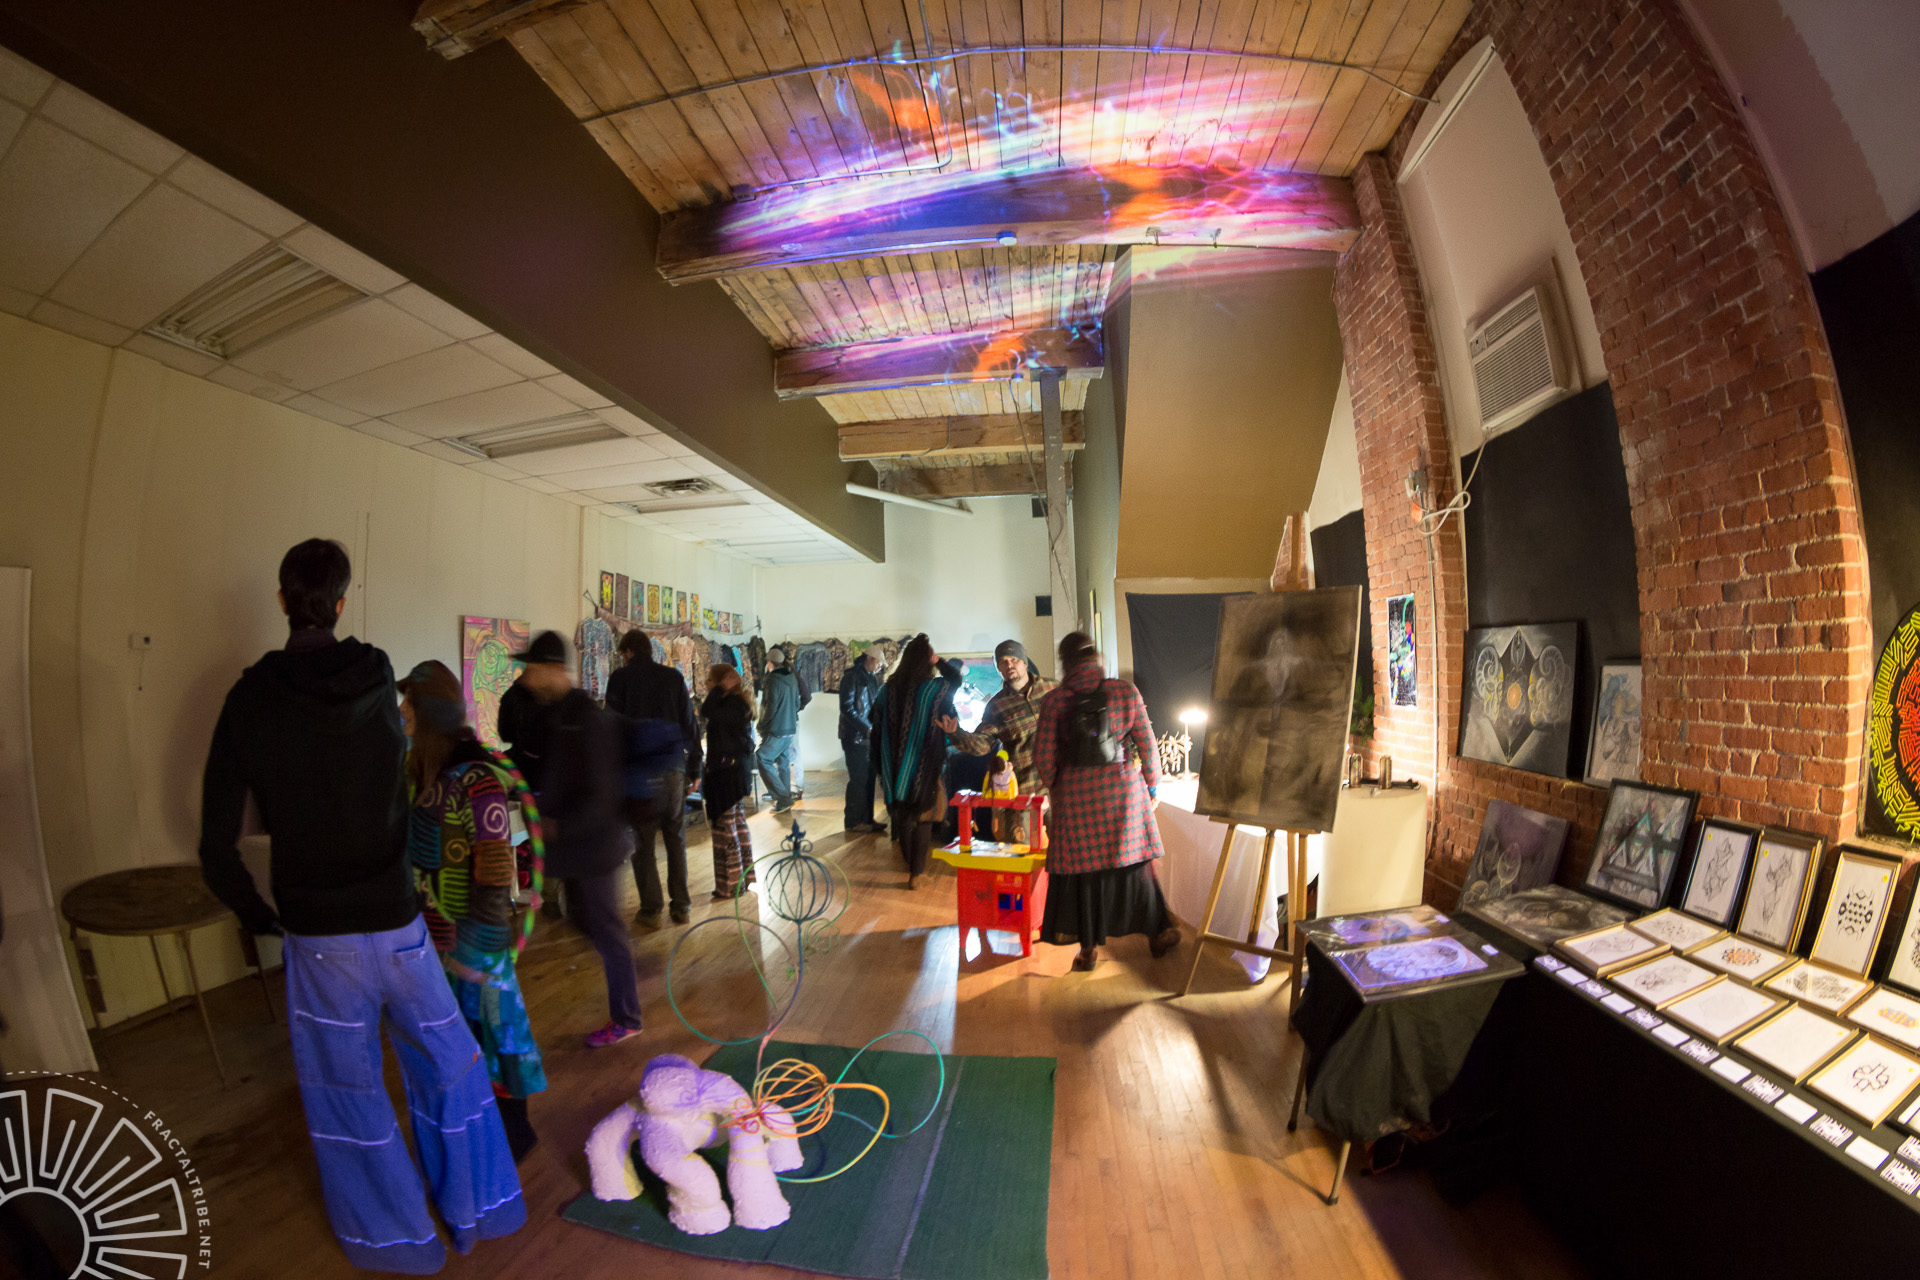 Art Gallery @ Fractaltribe's Year of the Fractilian NYE party 12/31/14 in Worcester, MA, USA